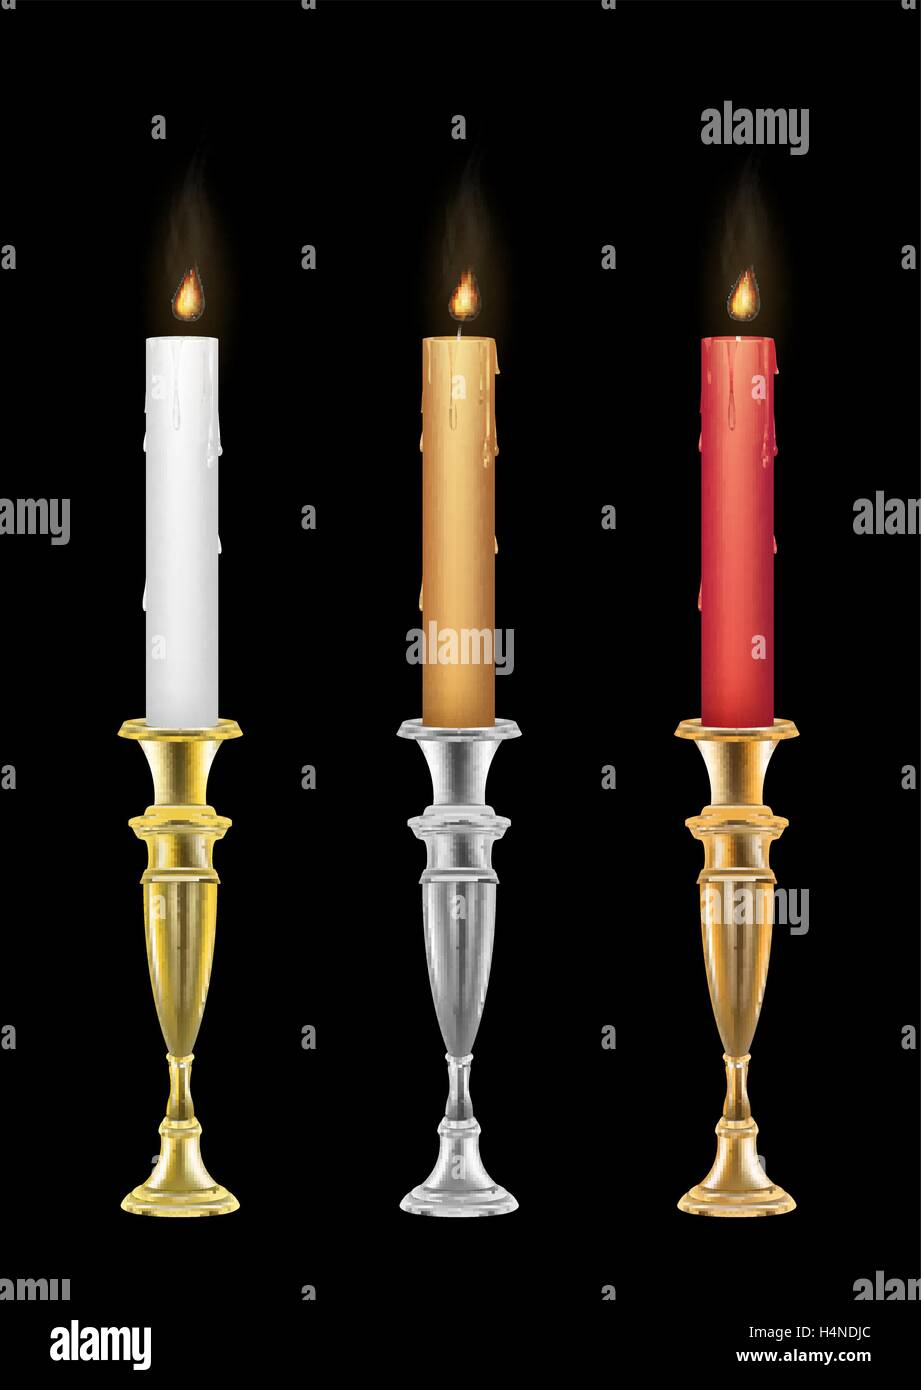 Candle holders with burning candle - Stock Image